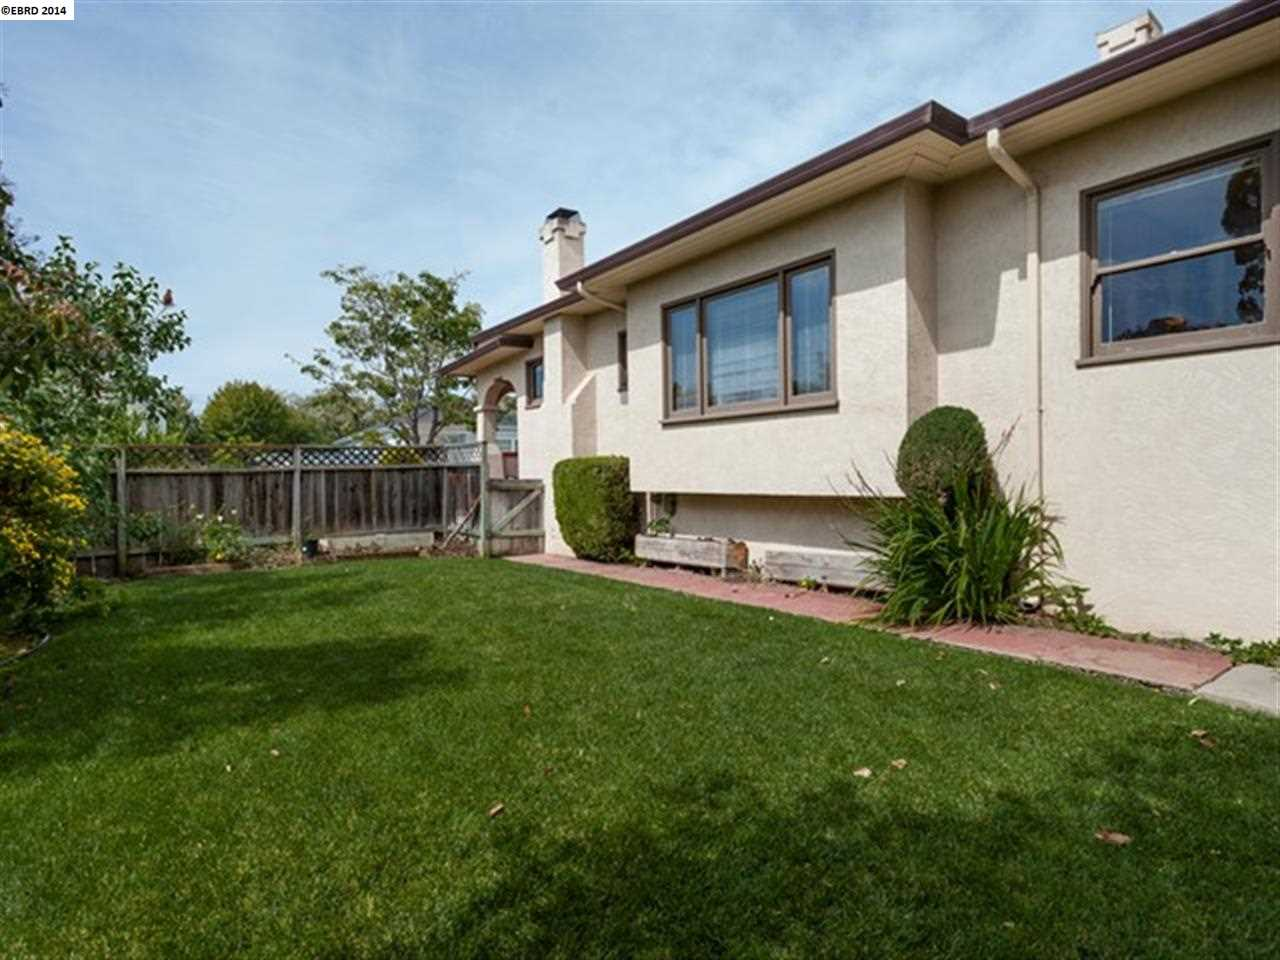 Additional photo for property listing at 2913 MADISON Street  Alameda, California 94501 United States